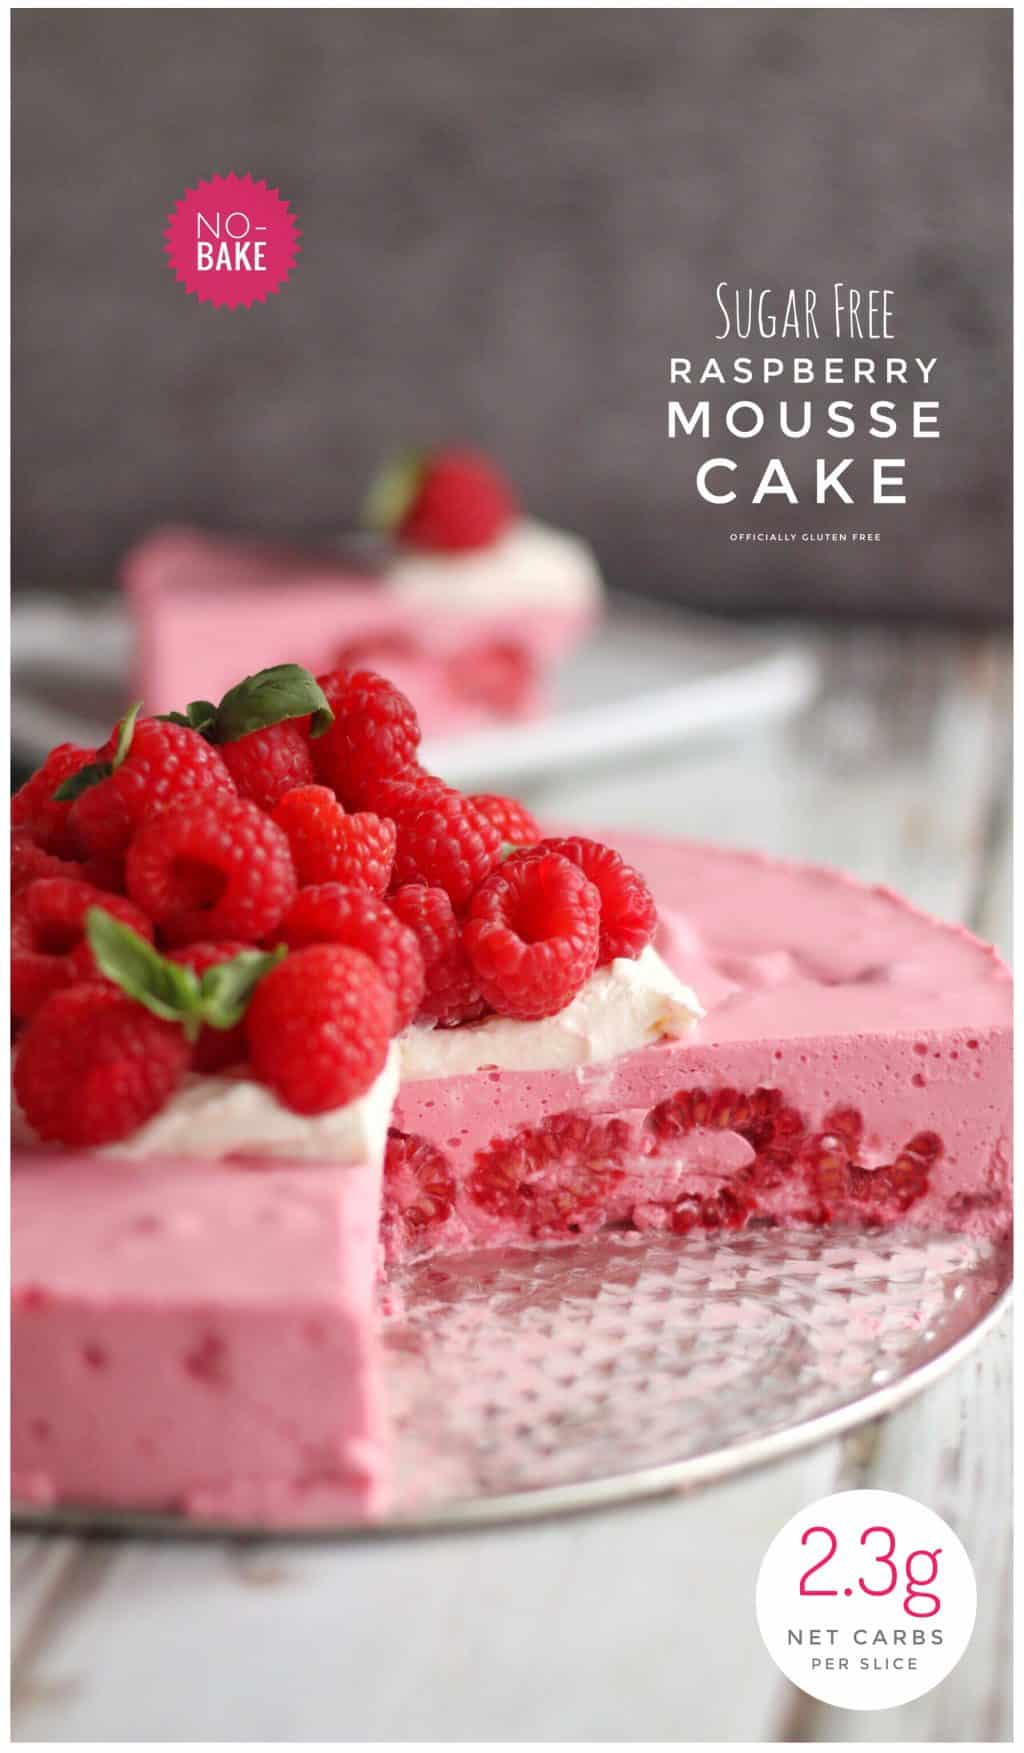 This recipe makes 12 Slices of No-Bake Sugar Free Raspberry Mousse Cake.